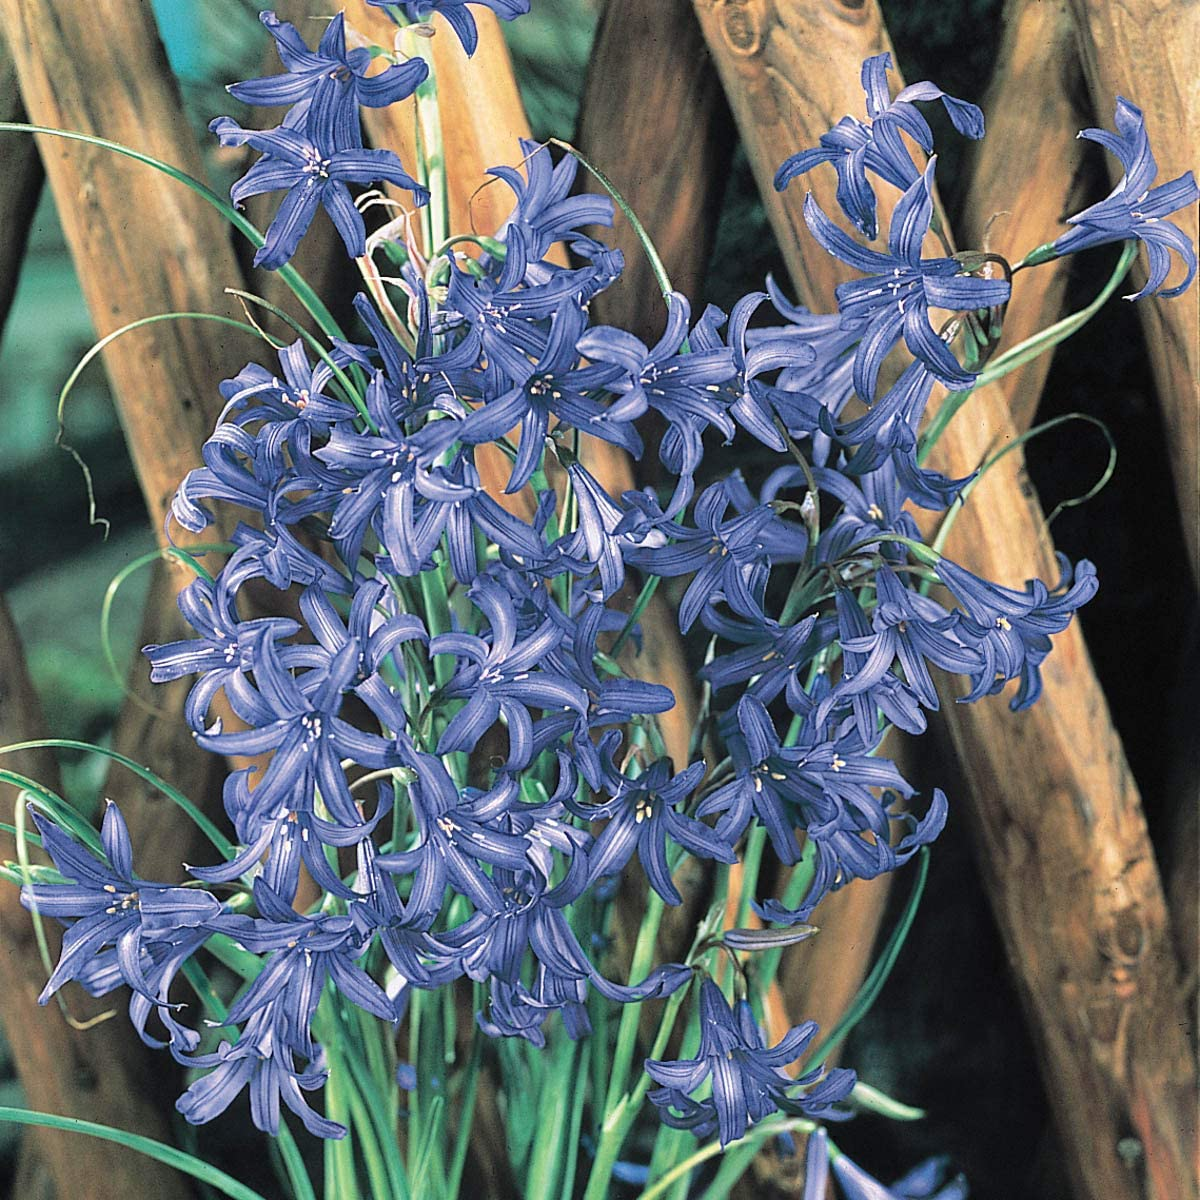 BRECK'S Lavender Colored Mountain Lillies Flowering Bulbs - Each Offer Includes 20 Bulbs